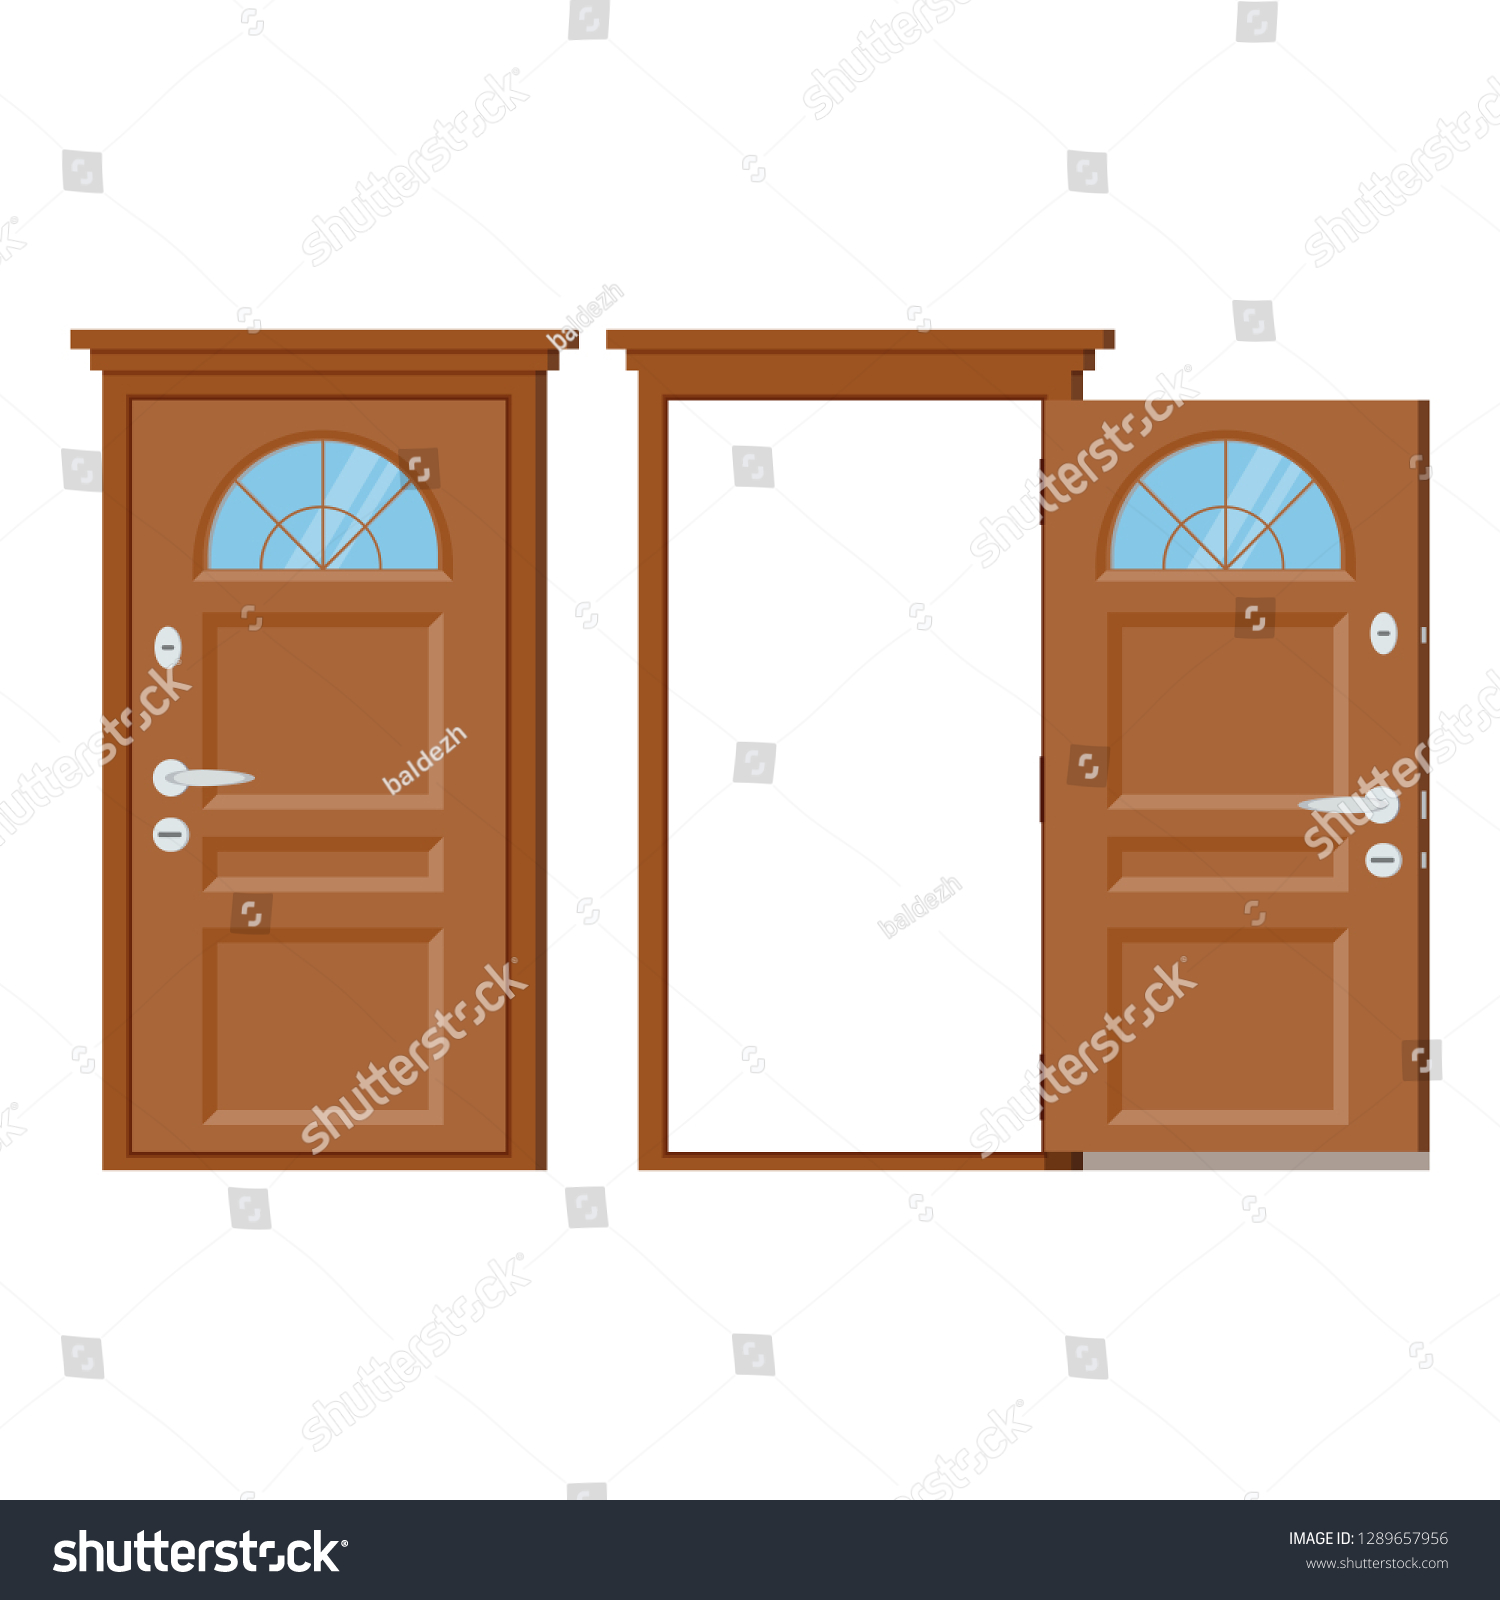 hight resolution of wooden closed and open entrance door with frame and window isolated on white background vector